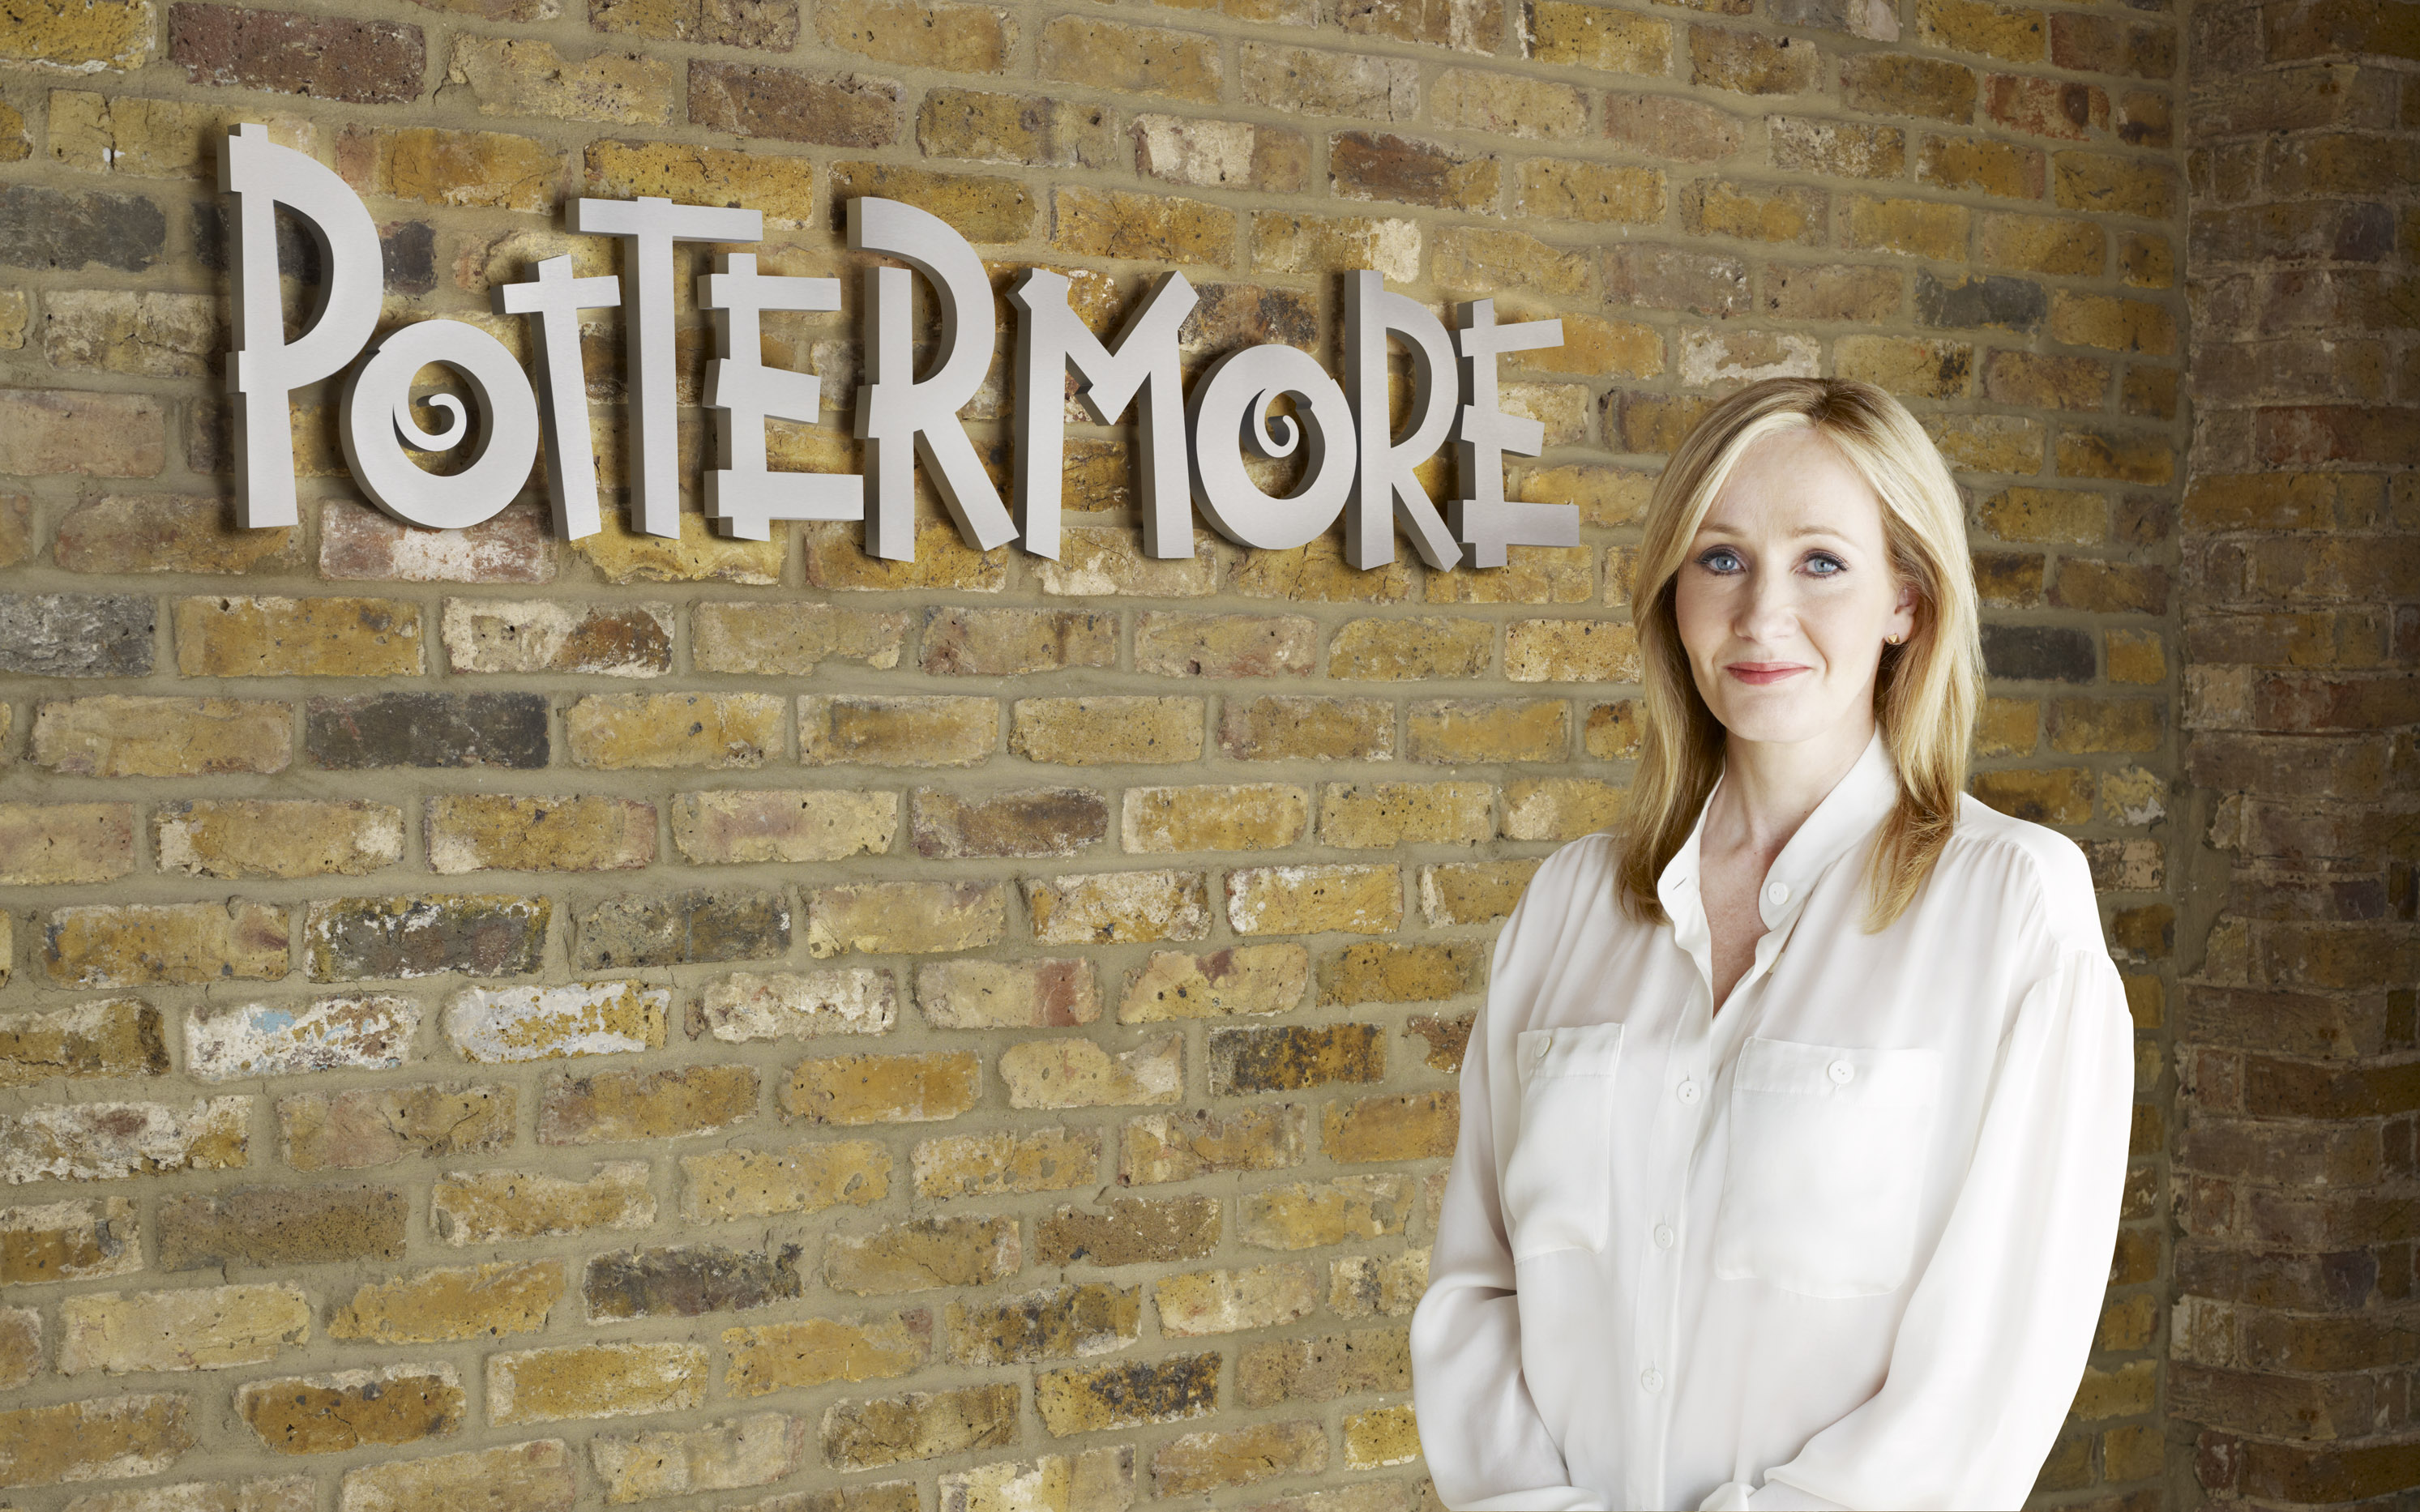 JK Rowling's Pottermore ebooks